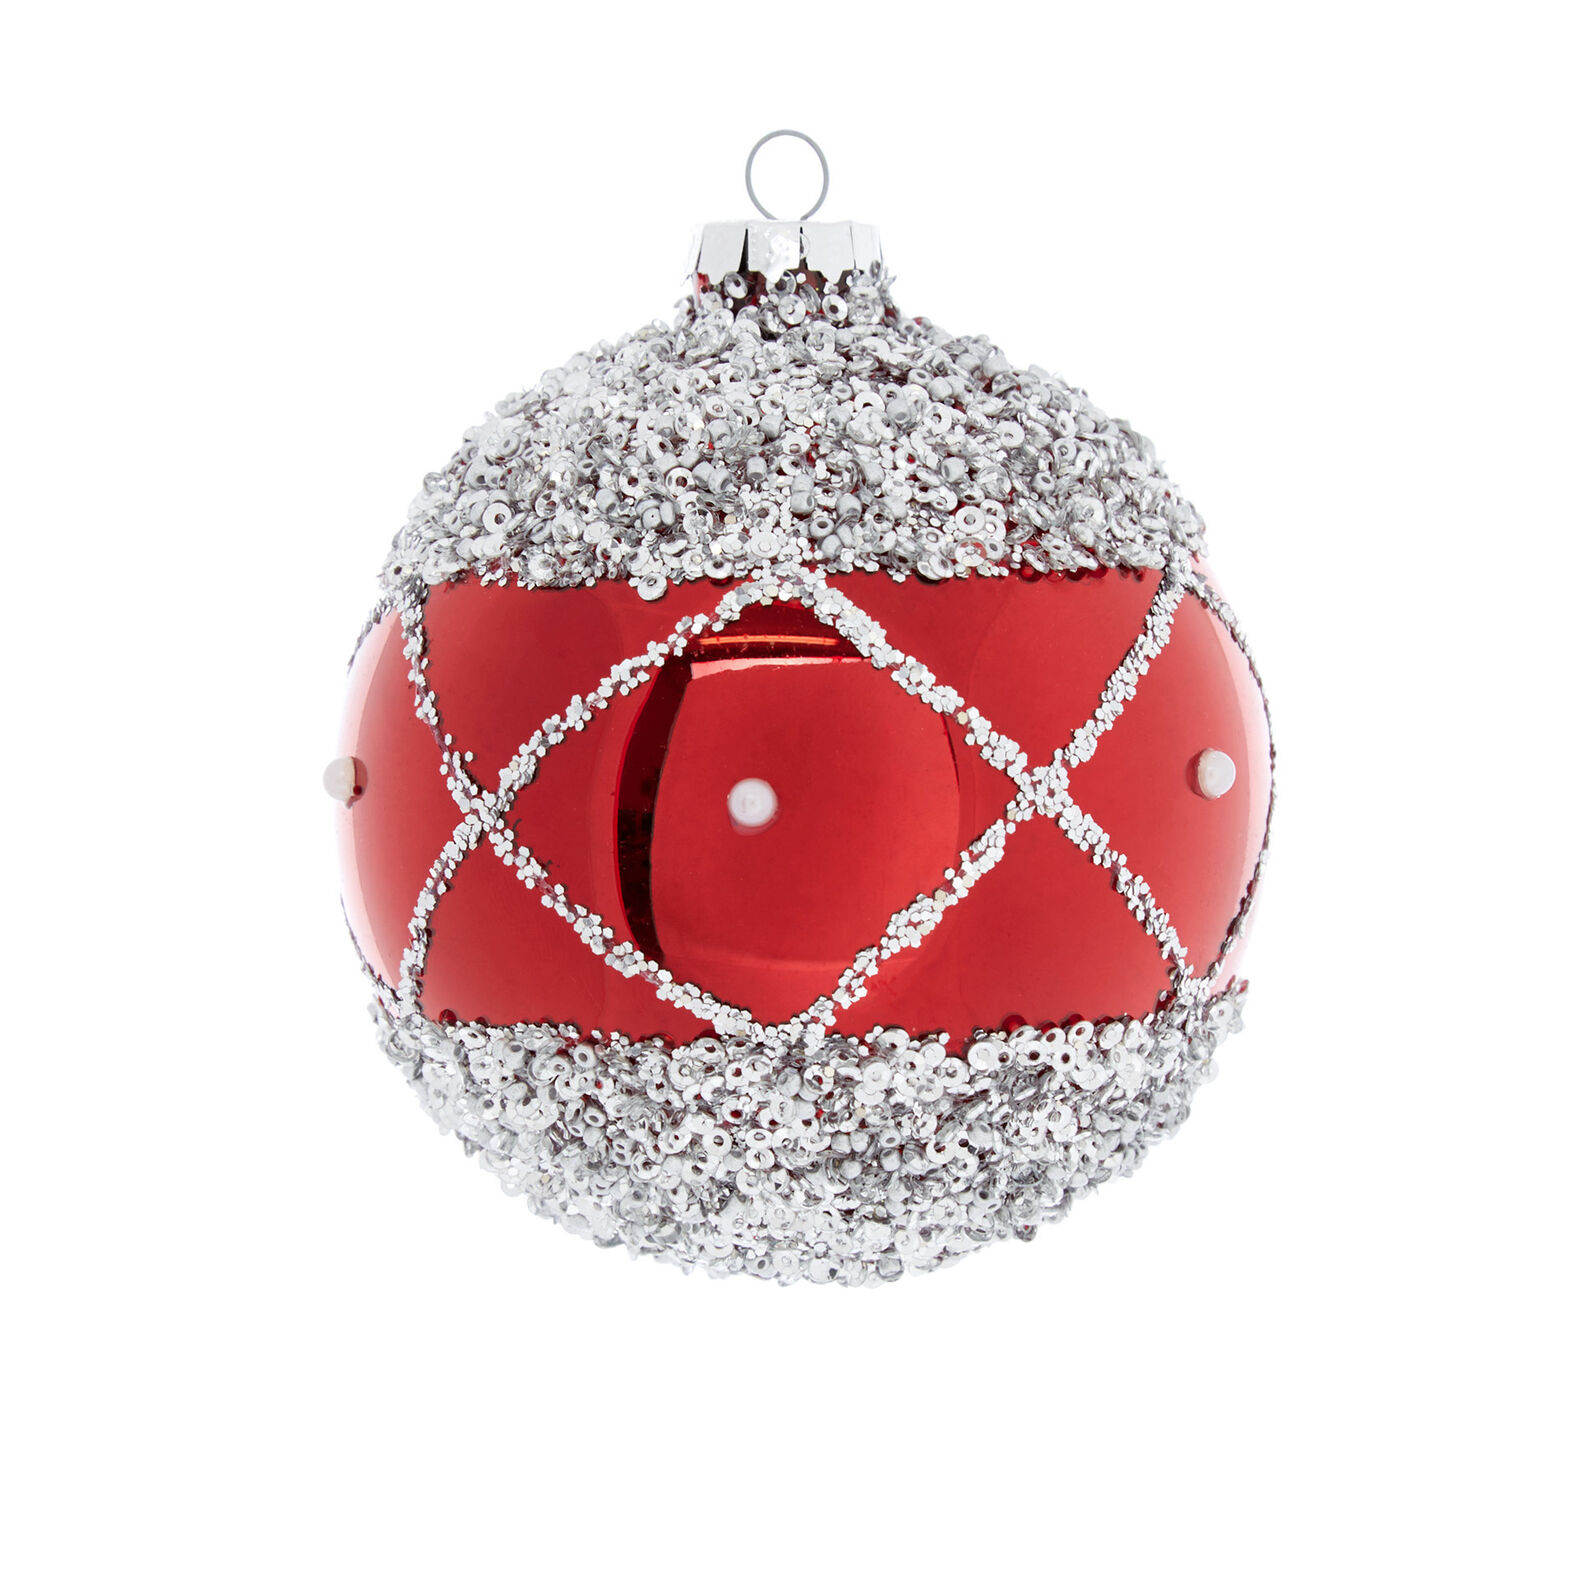 Hand-decorated bauble with crystals D8cm